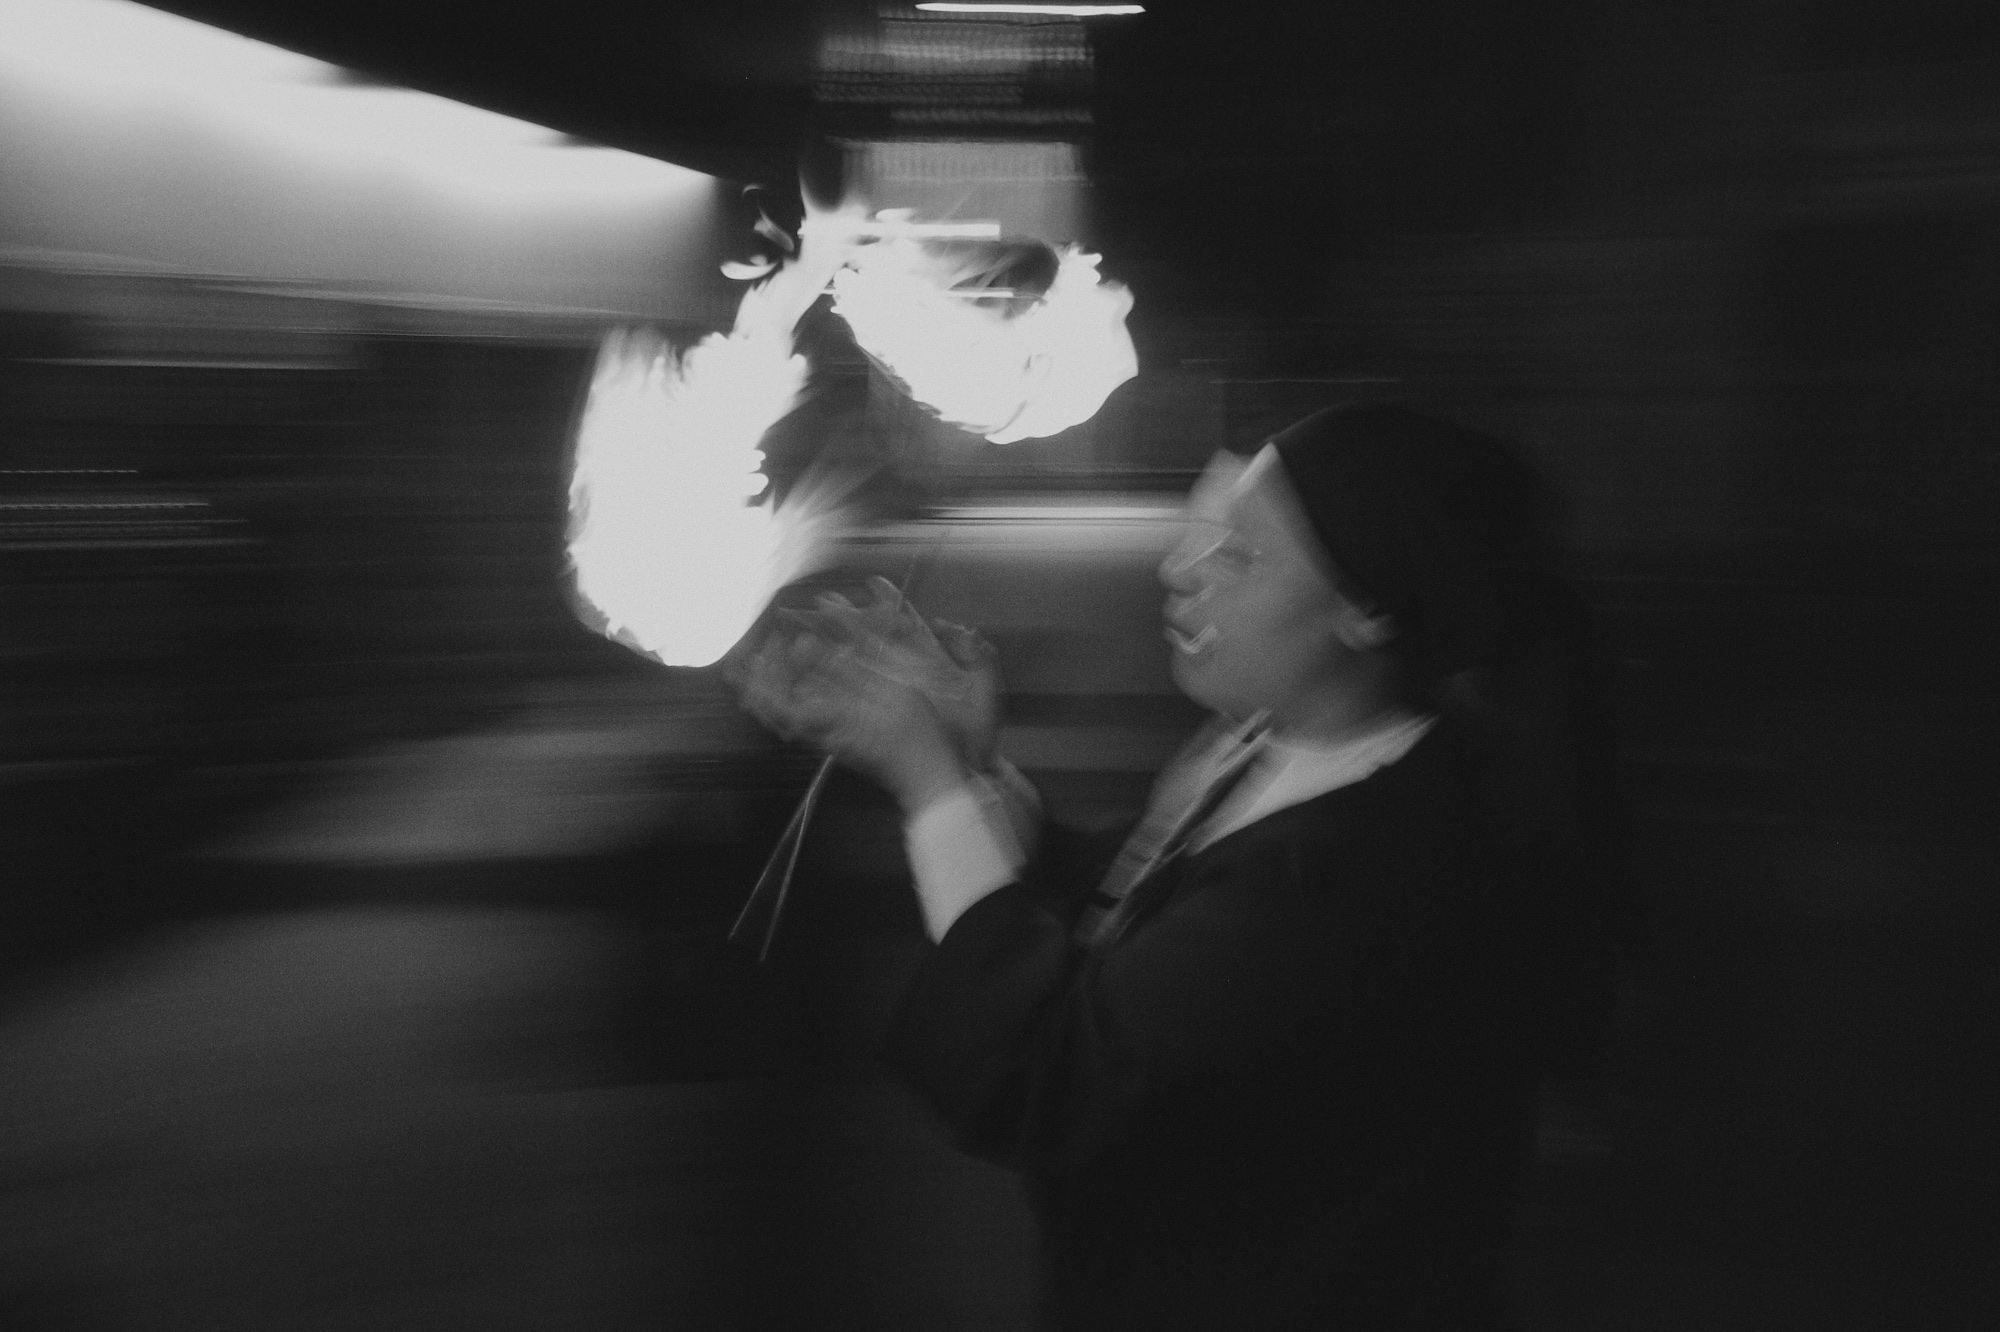 denis-bosnic-cairo-egypt-bw-photography-10-fire-show-woman-borsa.jpg